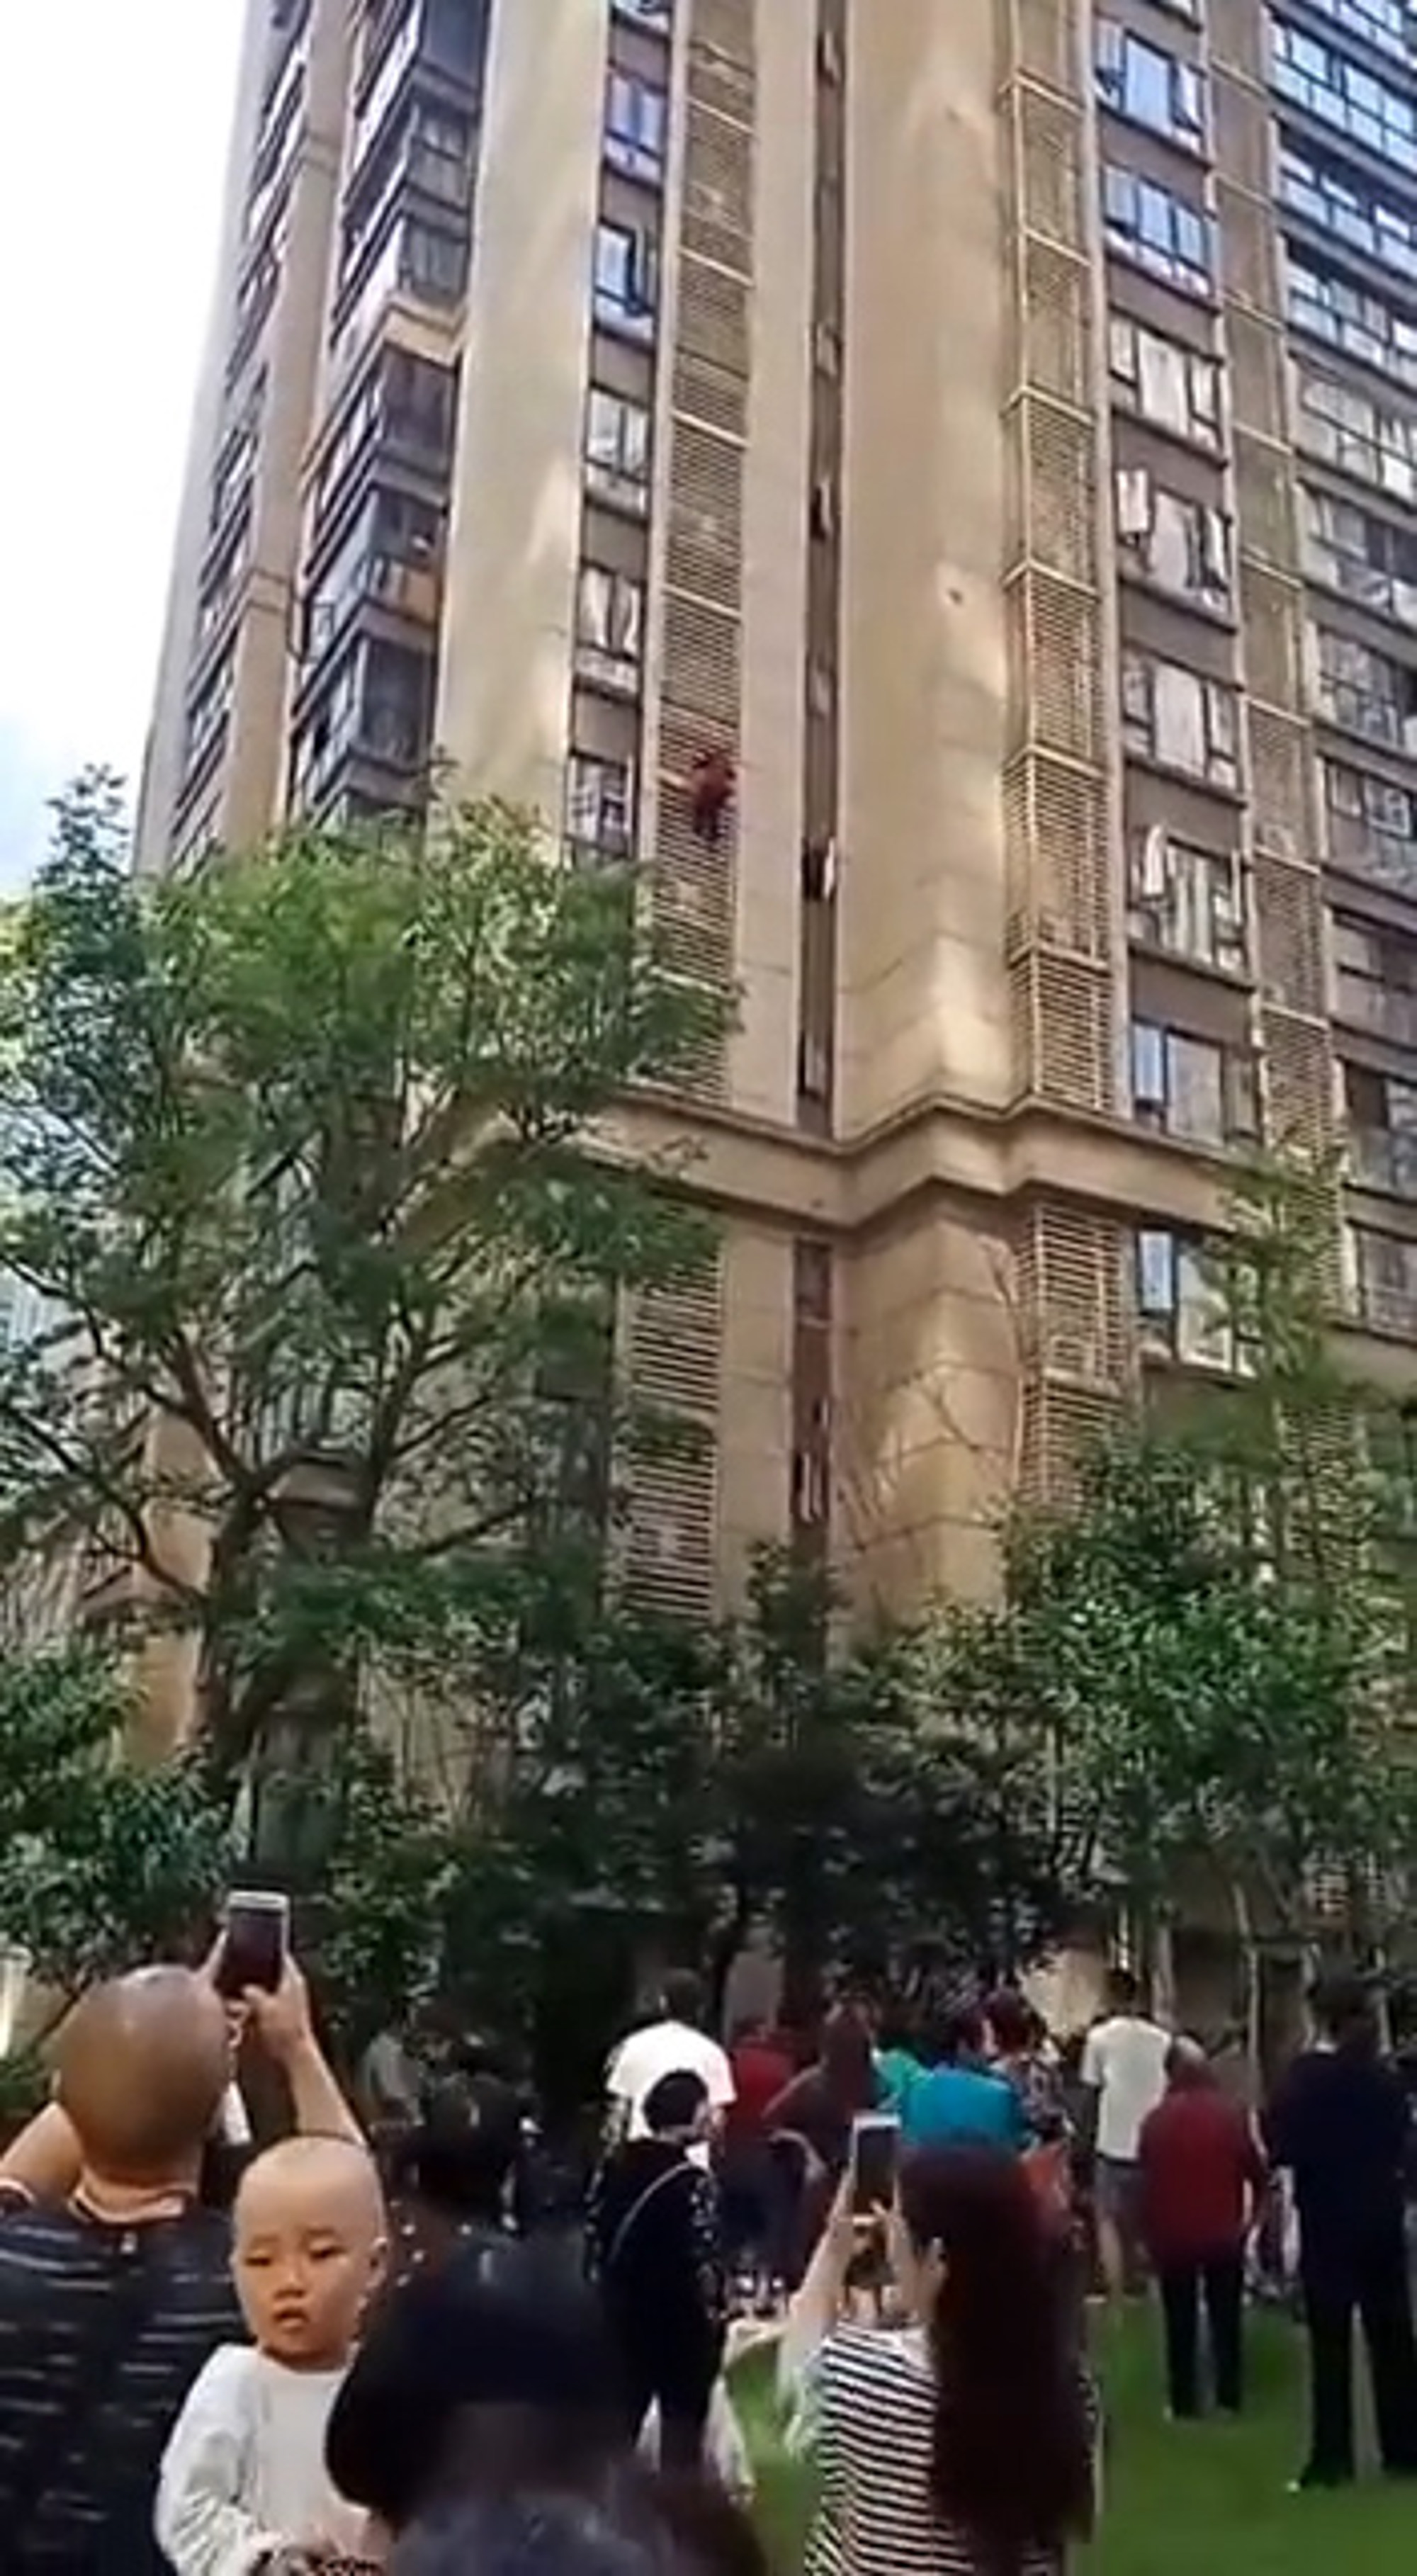 The 90-year-old woman climbing down the side of the high-rise tower block. Credit: AsiaWire